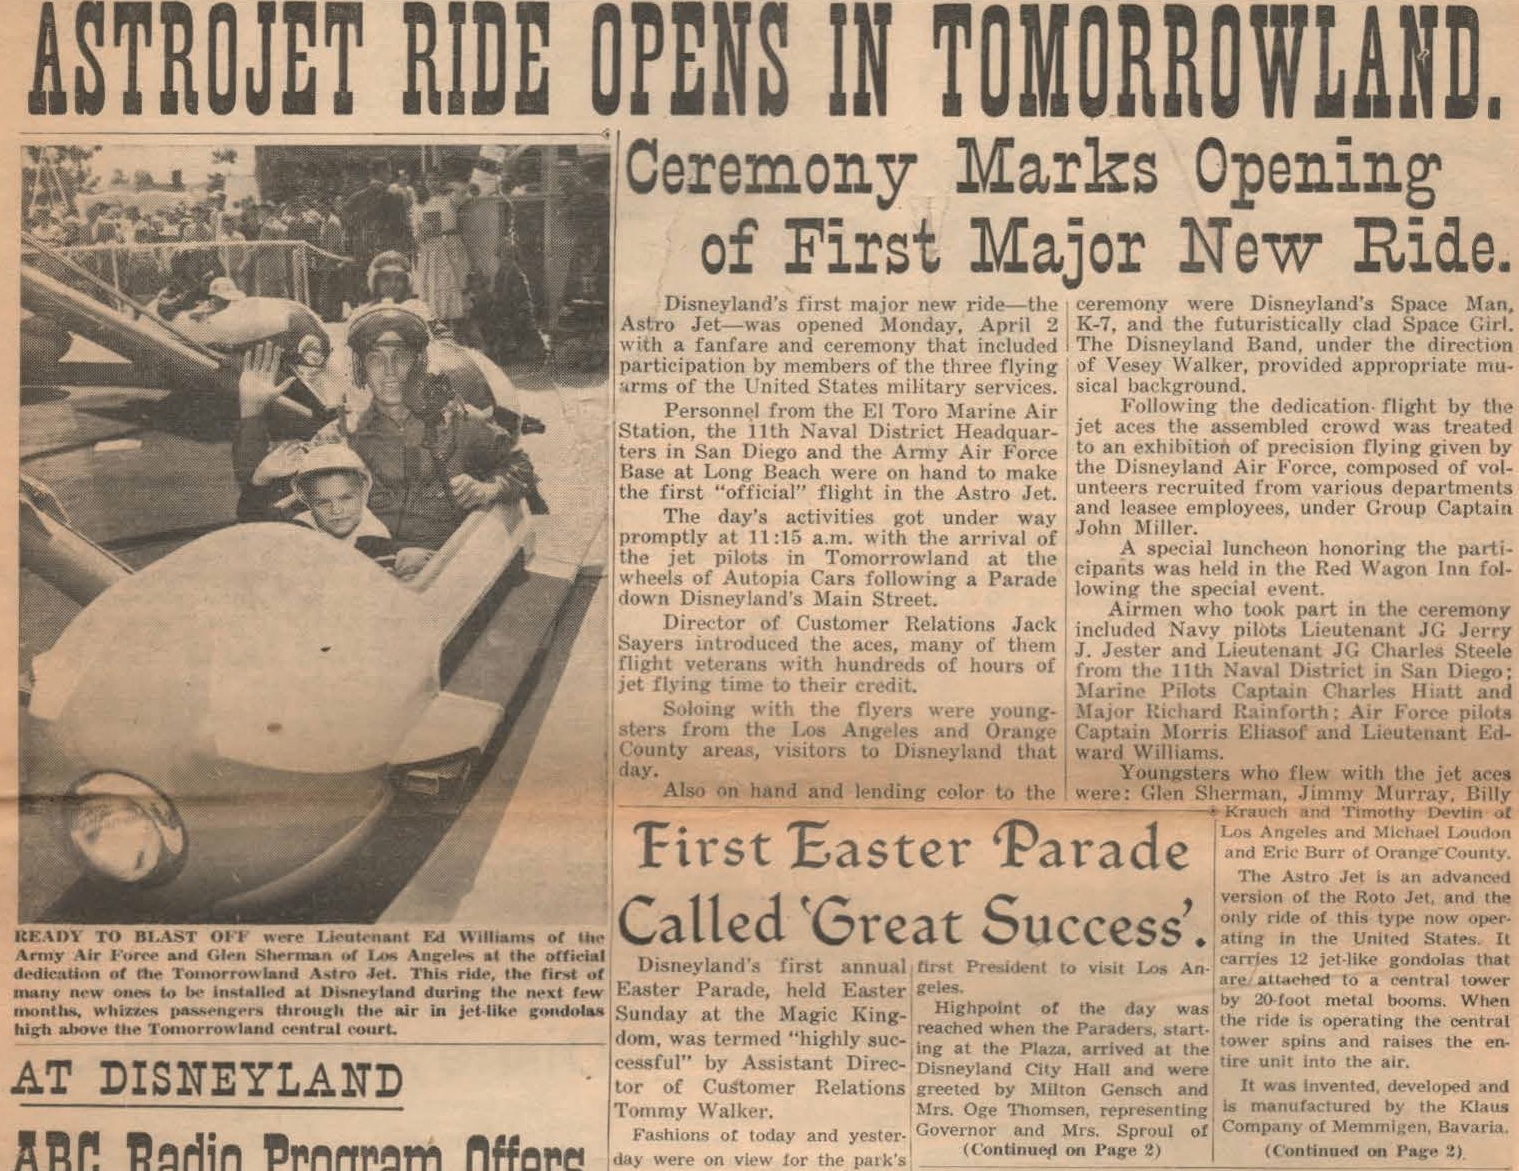 Old tomorowland month disneyland s first quot major new ride quot disney